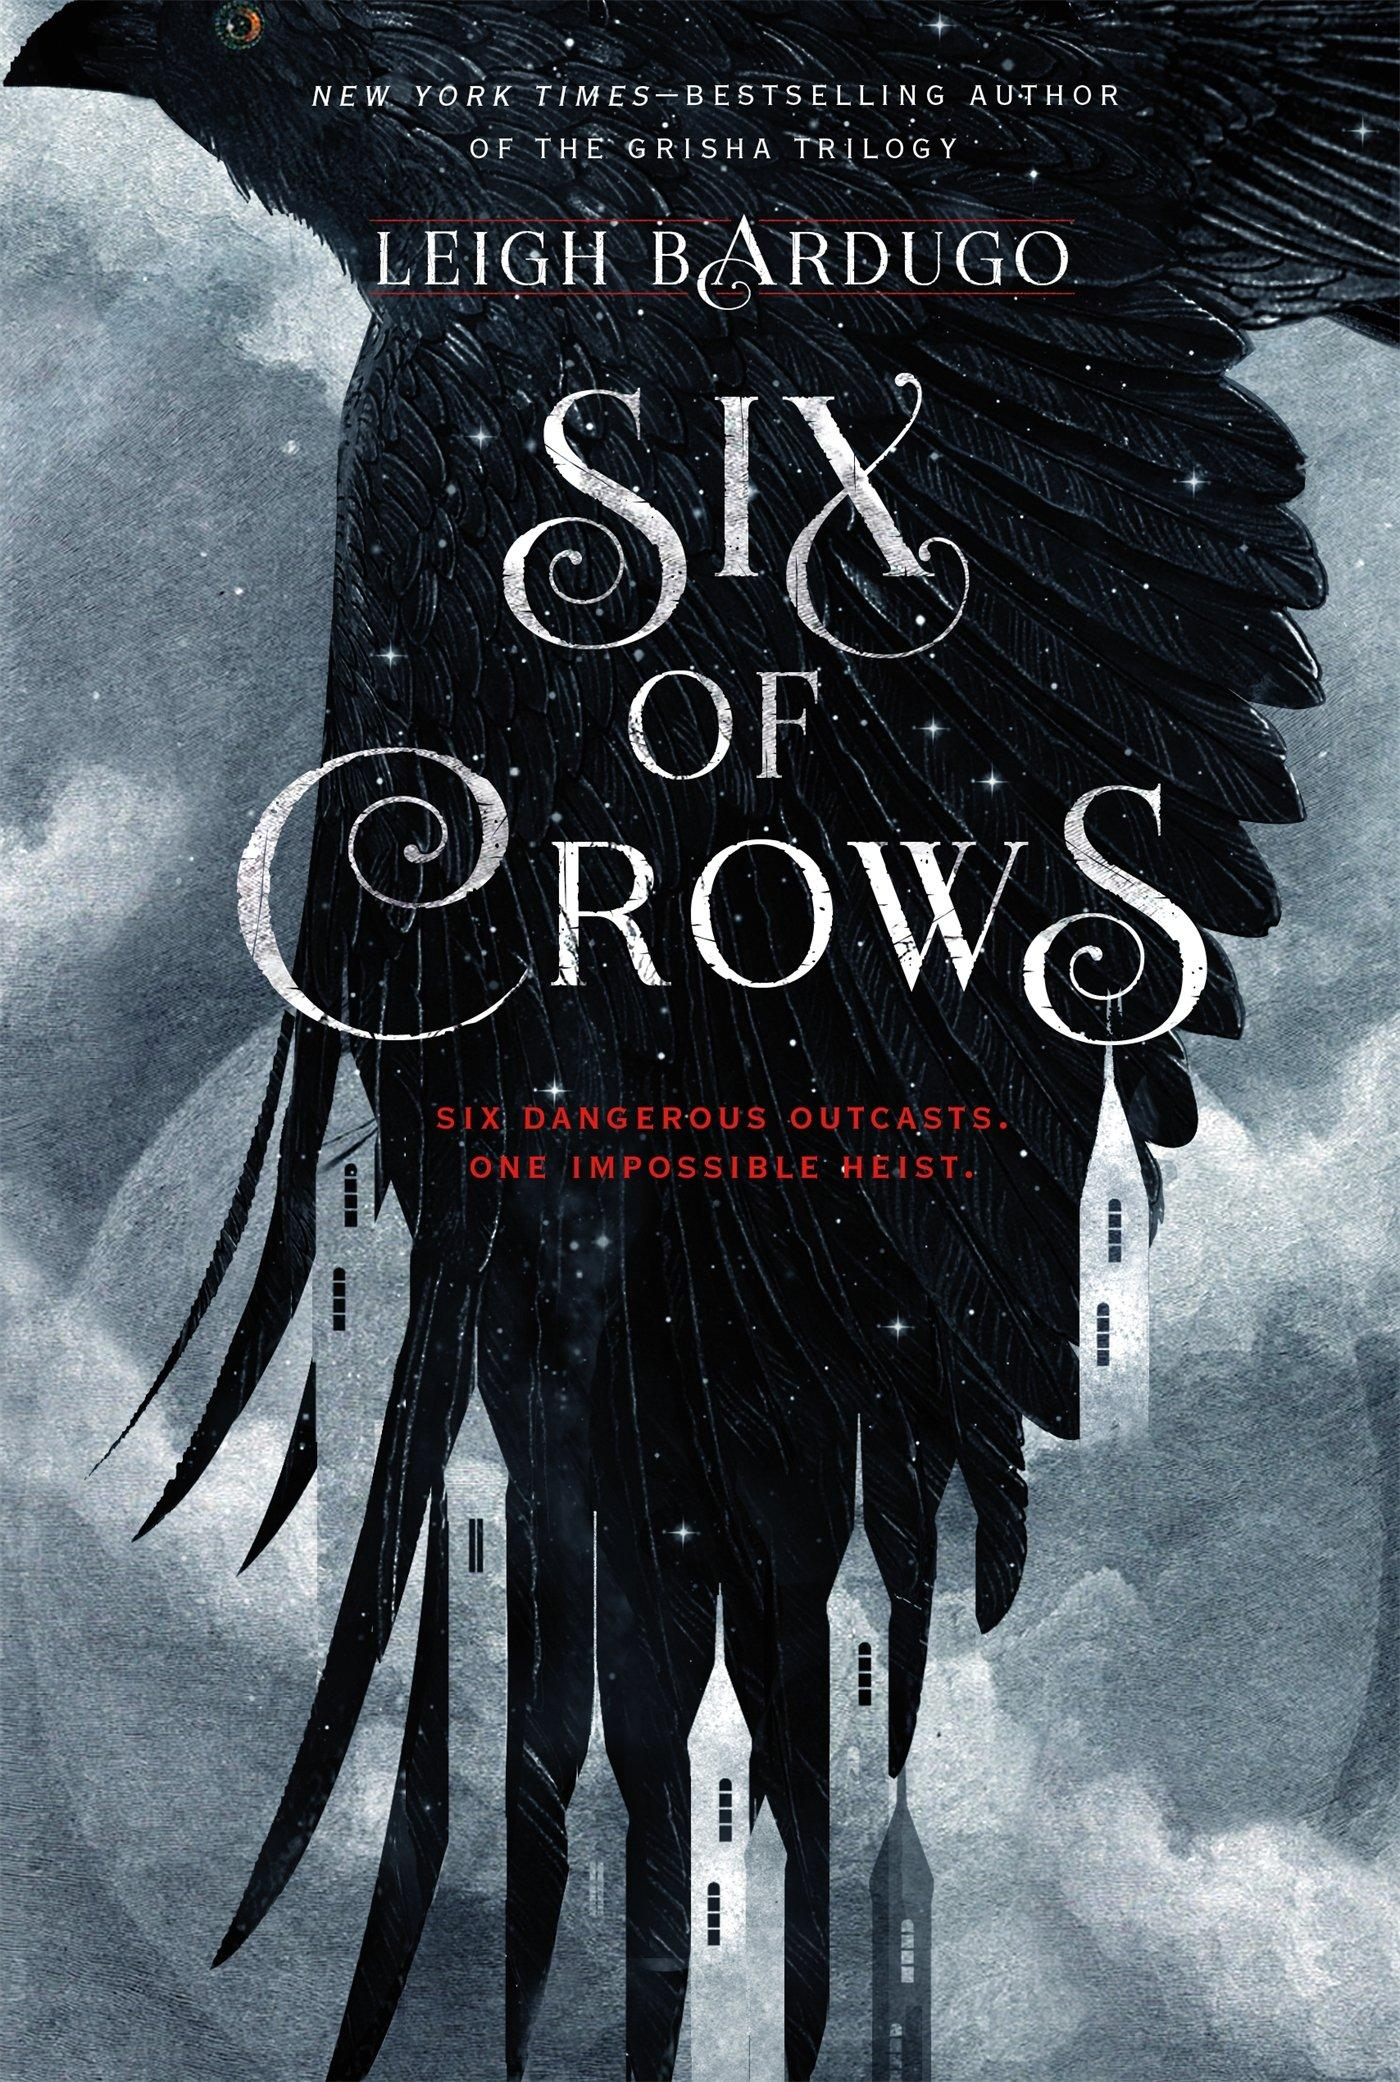 https://www.blackgate.com/wp-content/uploads/2015/09/Six-of-Crows.jpg